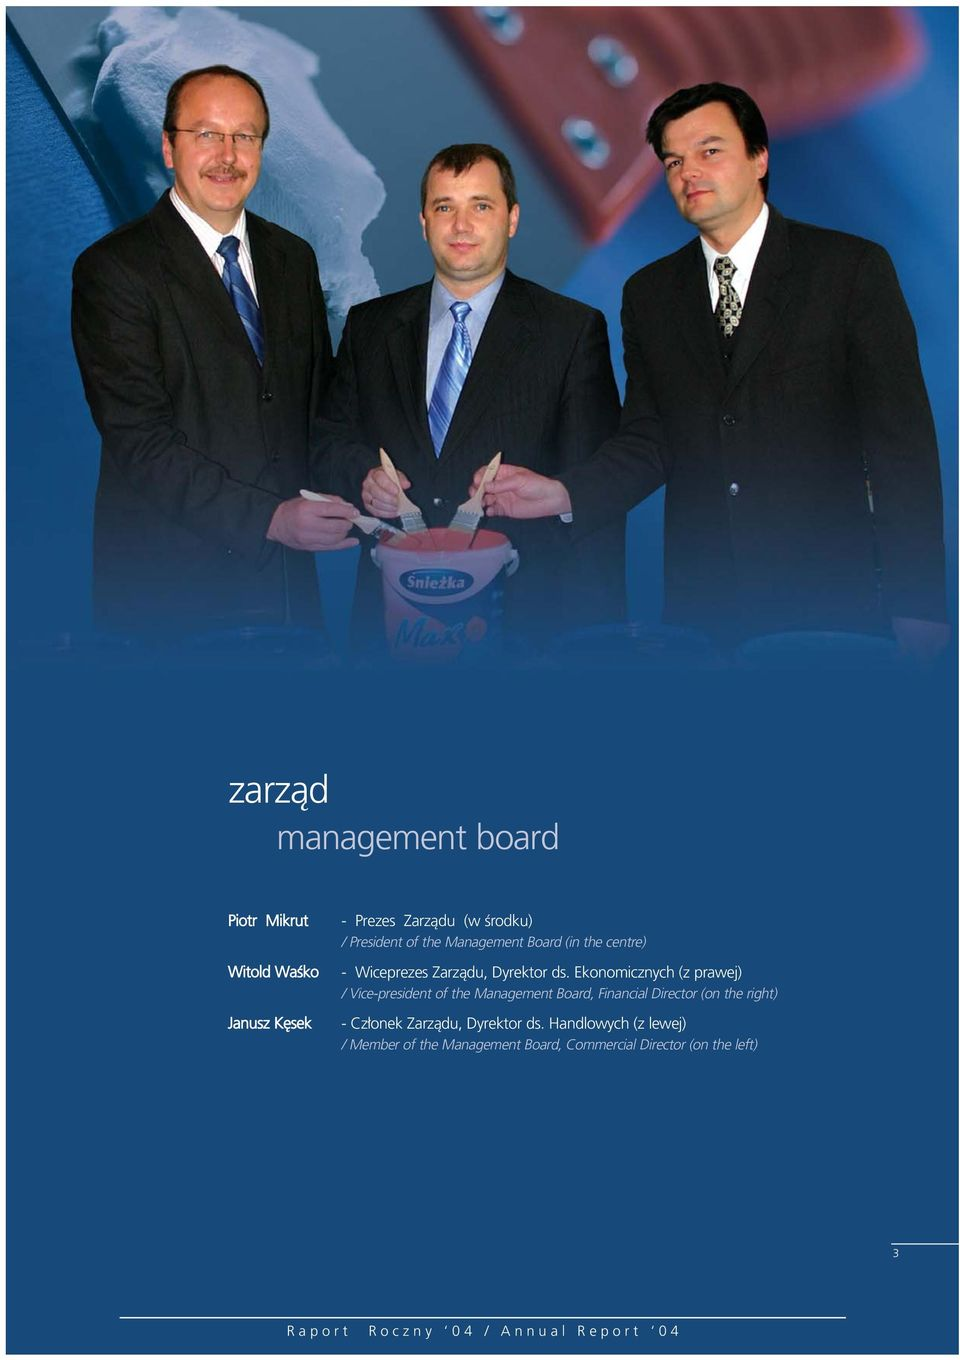 Ekonomicznych (z prawej) / Vice-president of the Management Board, Financial Director (on the right)